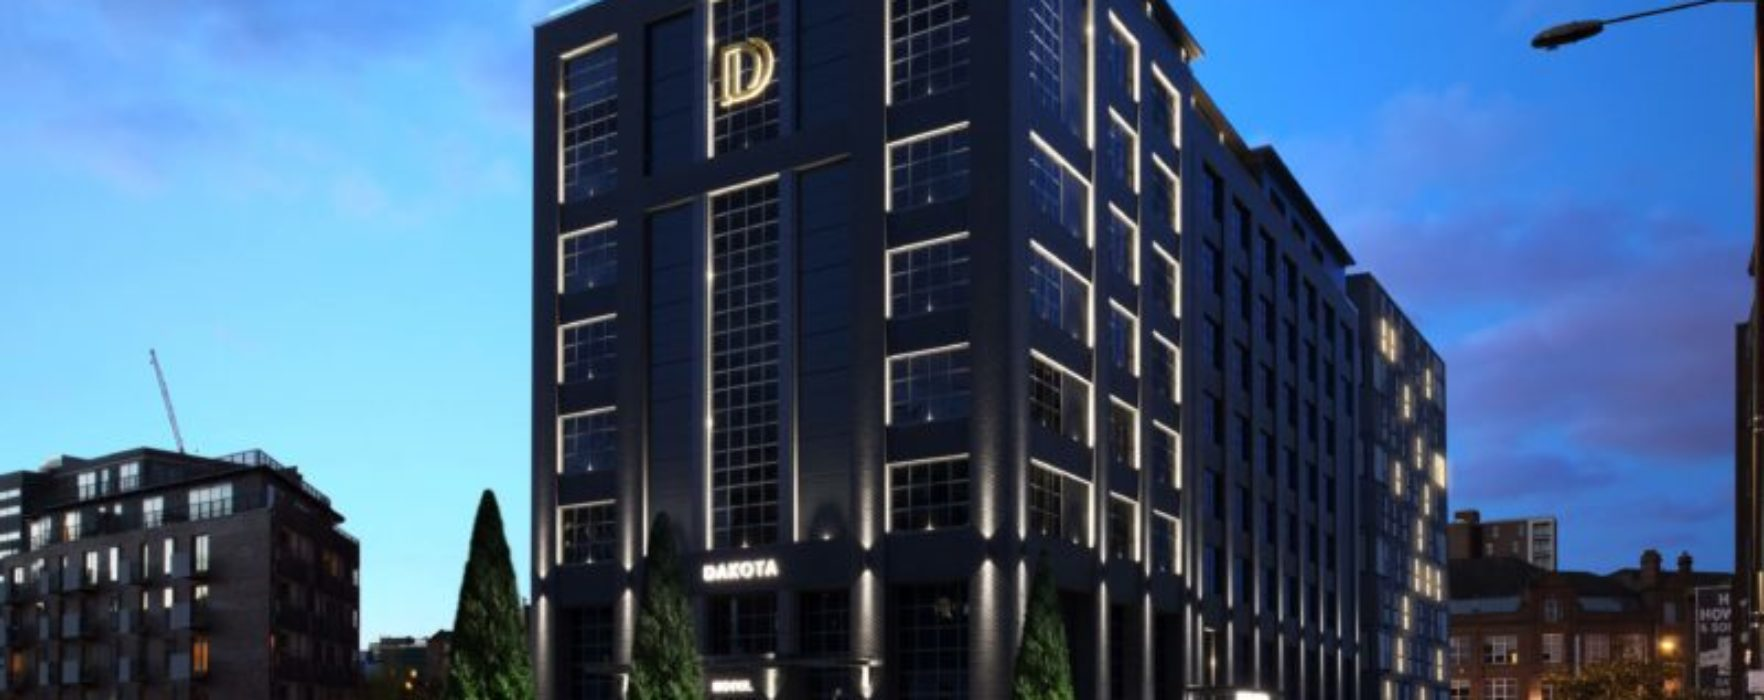 New luxury boutique hotel brand to open in the city